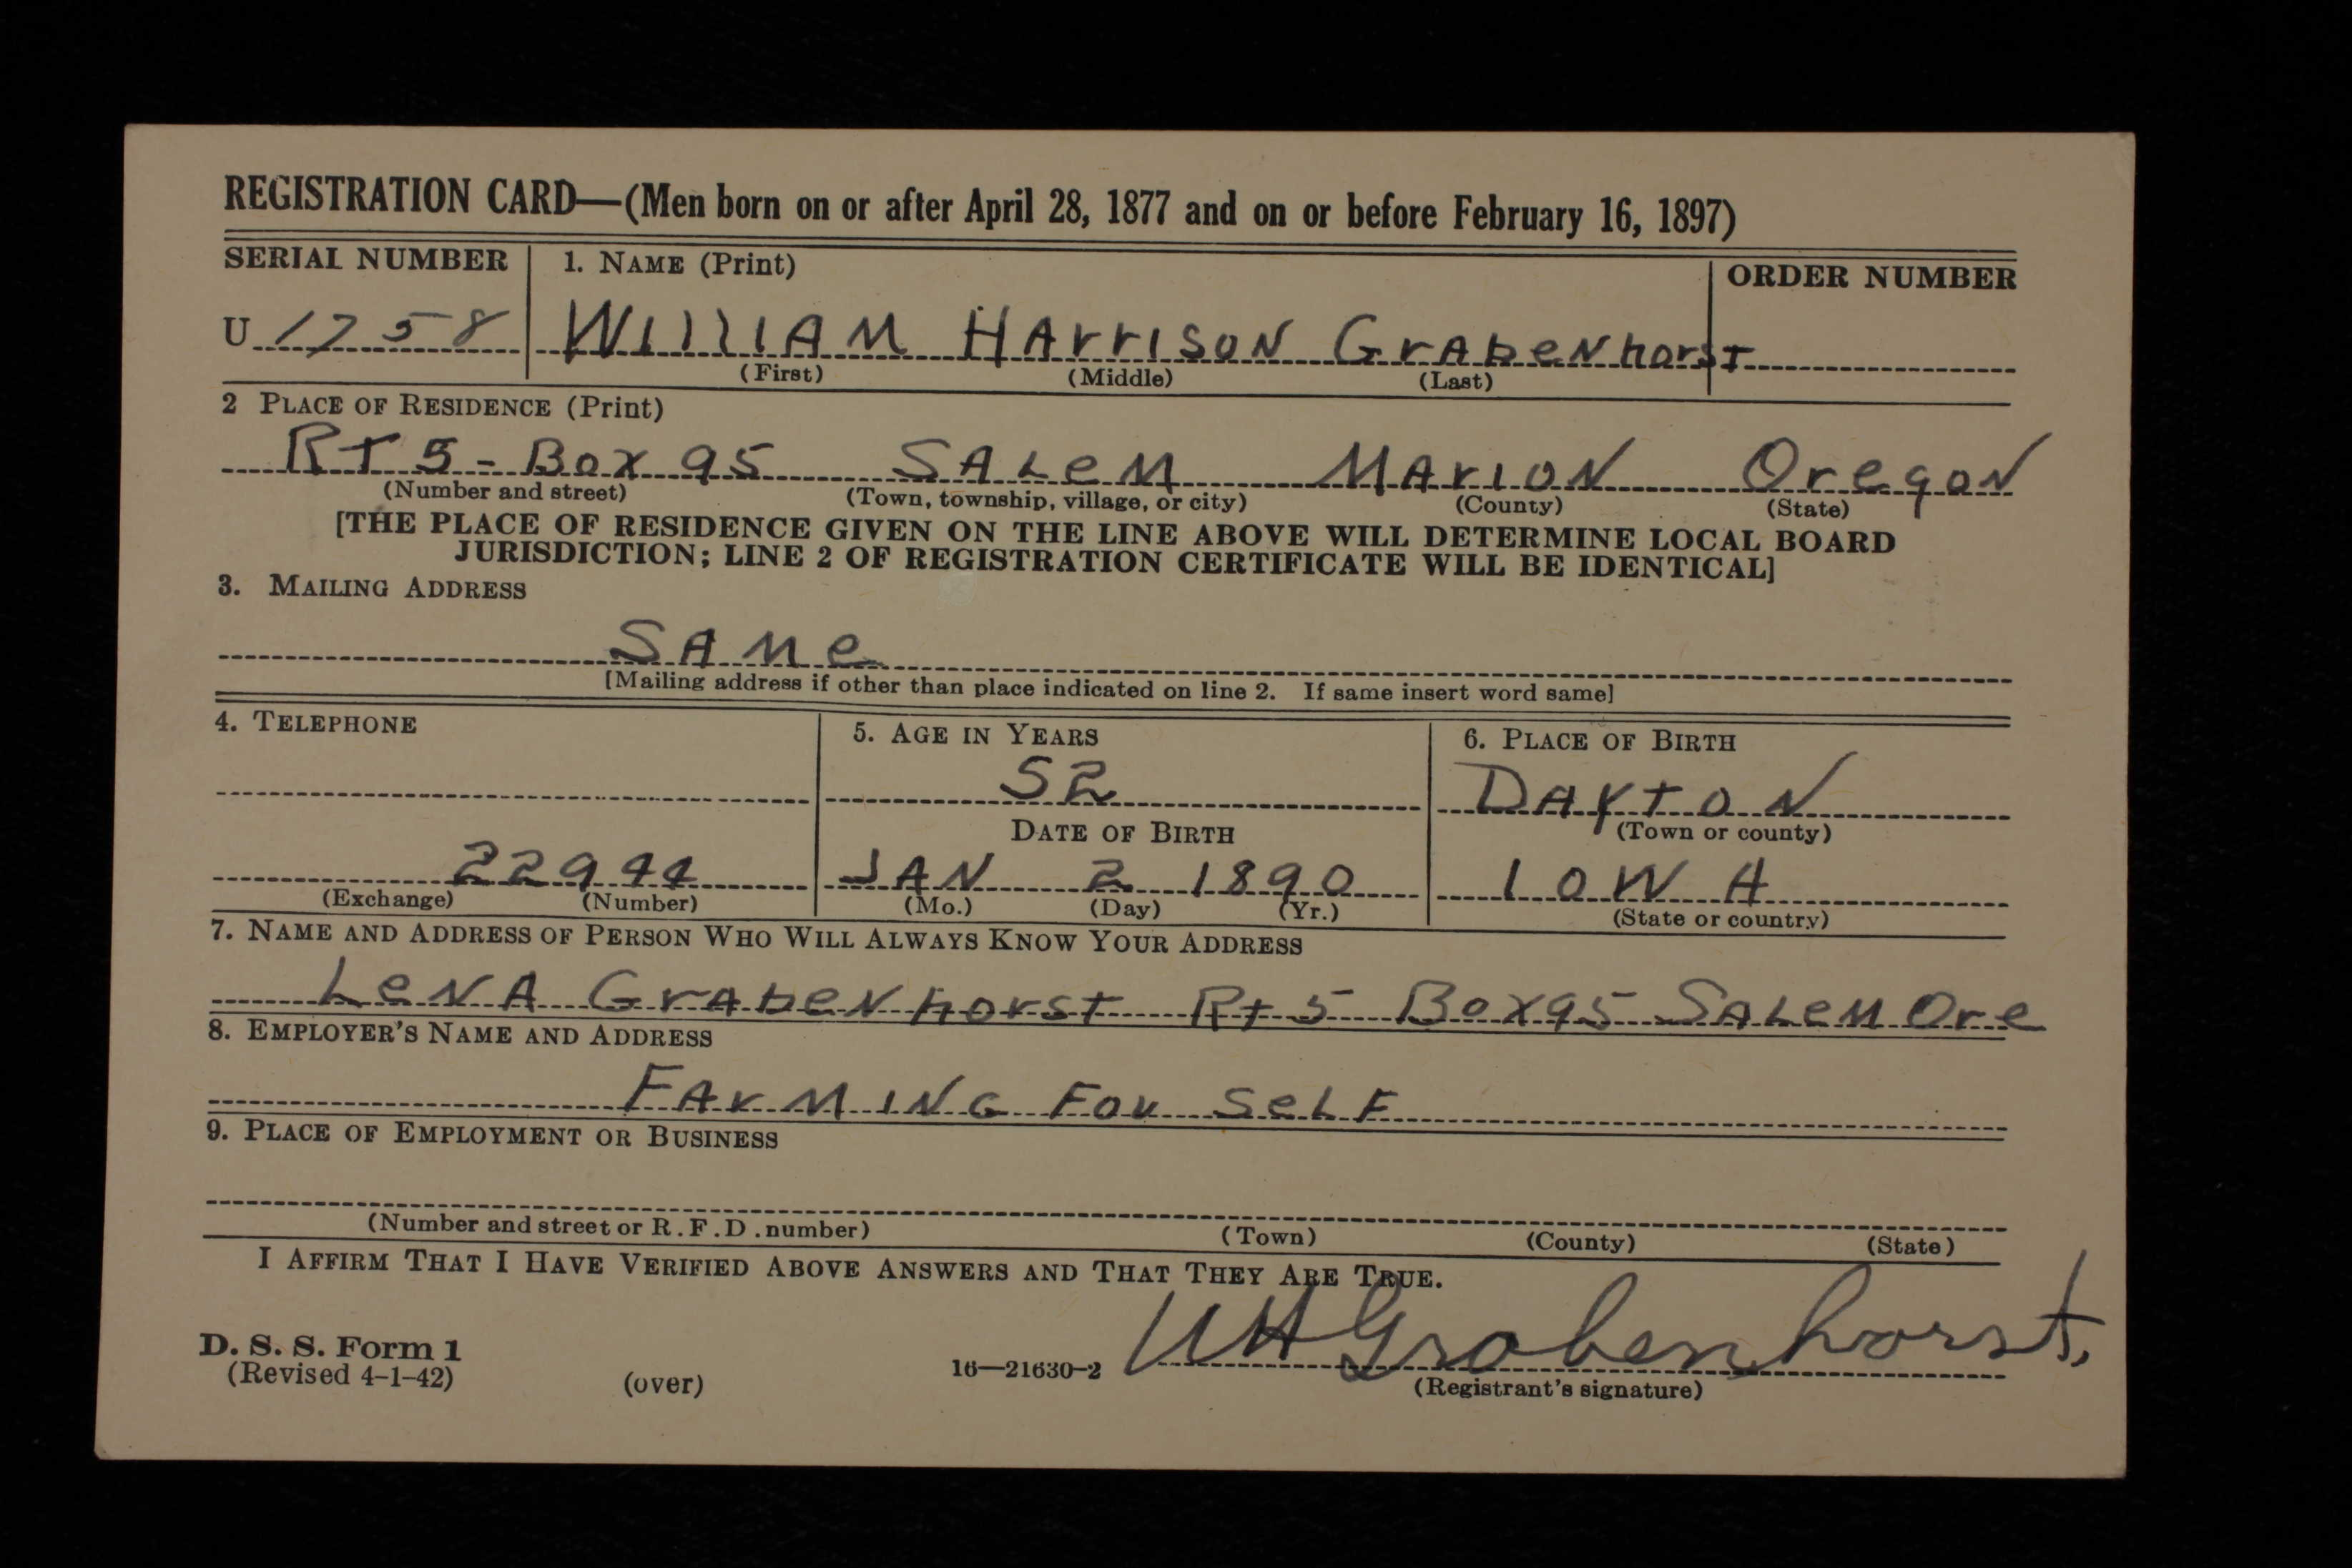 NAME: William Harrison Grabenhorst BIRTH DATE: 2 Jan 1890. BIRTH PLACE:  Dayton, Iowa, USA RESIDENCE: Salem, Oregon, USA RACE: White